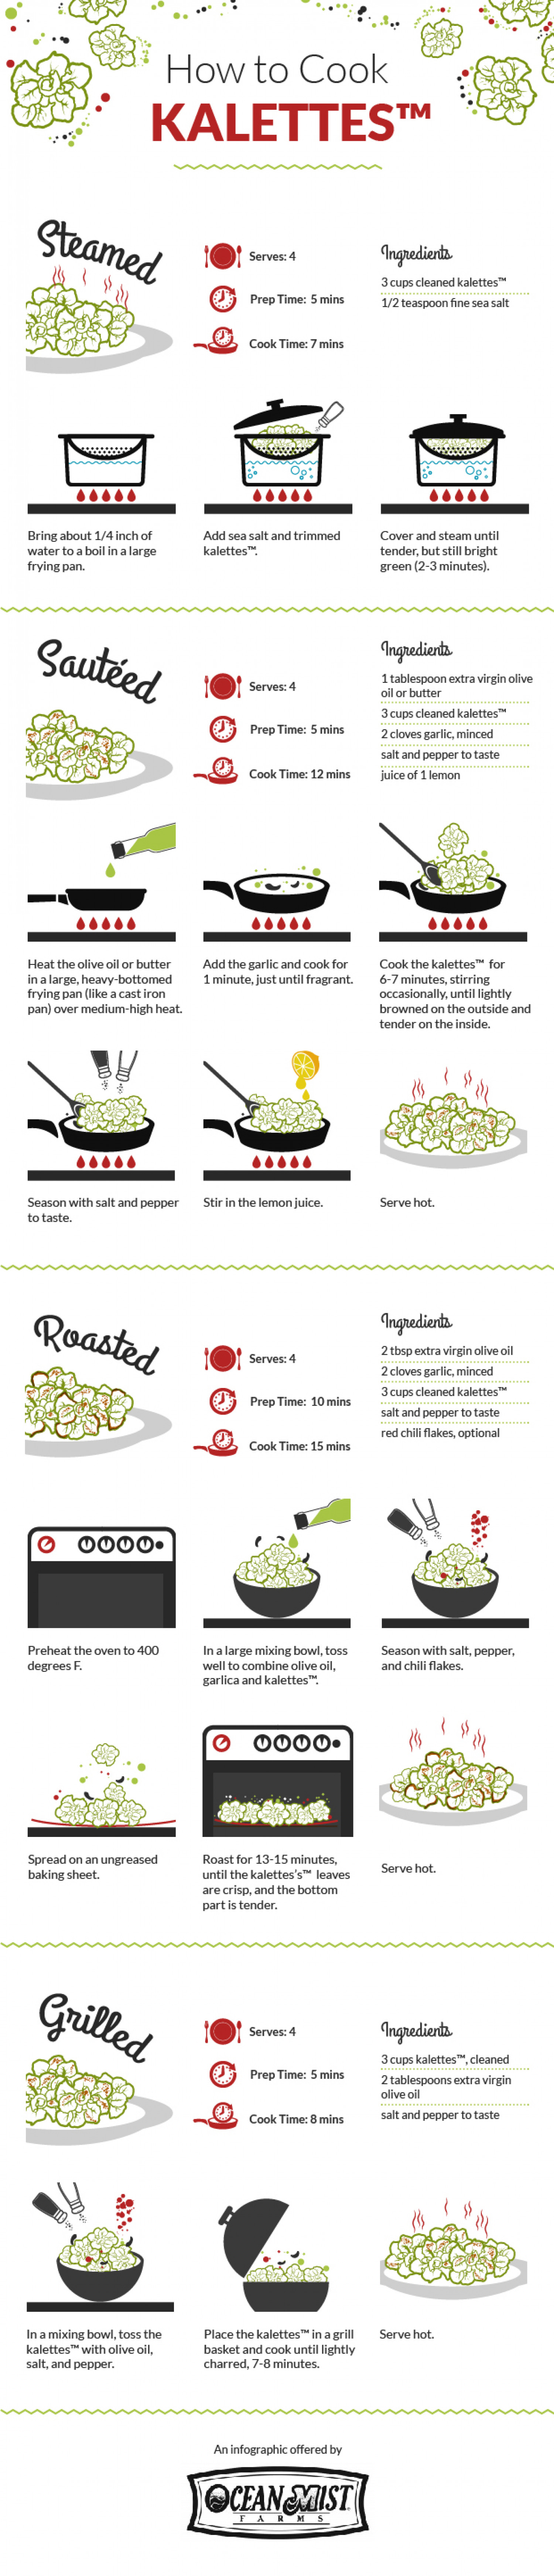 How to Cook Kalettes by Ocean Mist Farms Infographic